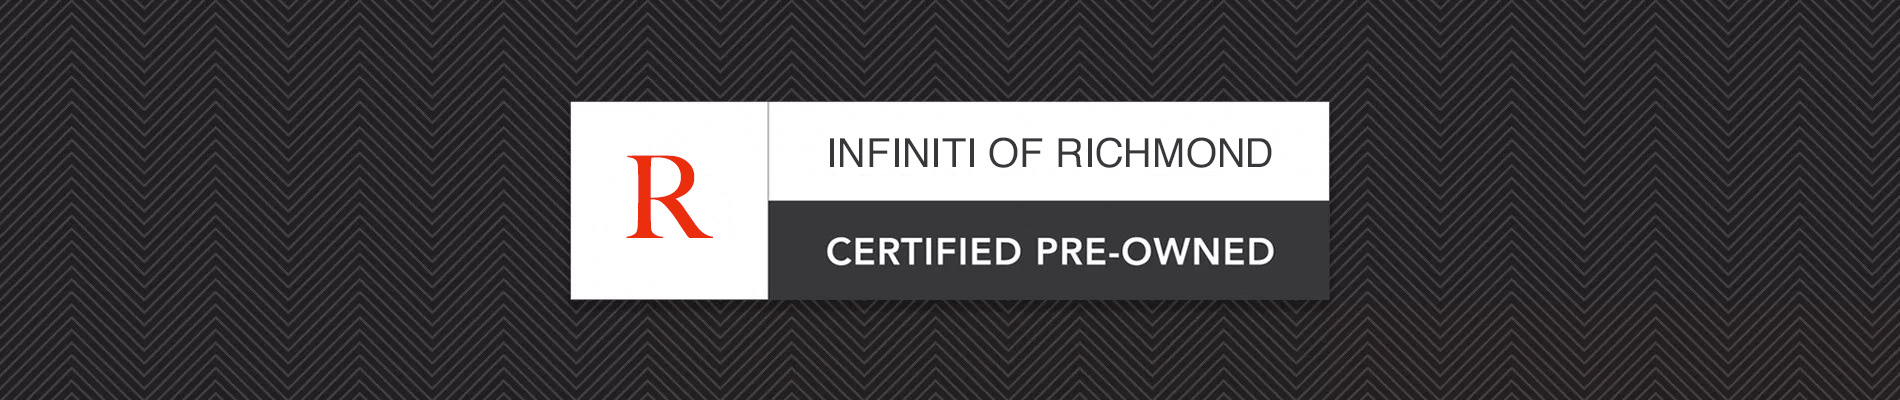 Infiniti of Richmond's Warranty